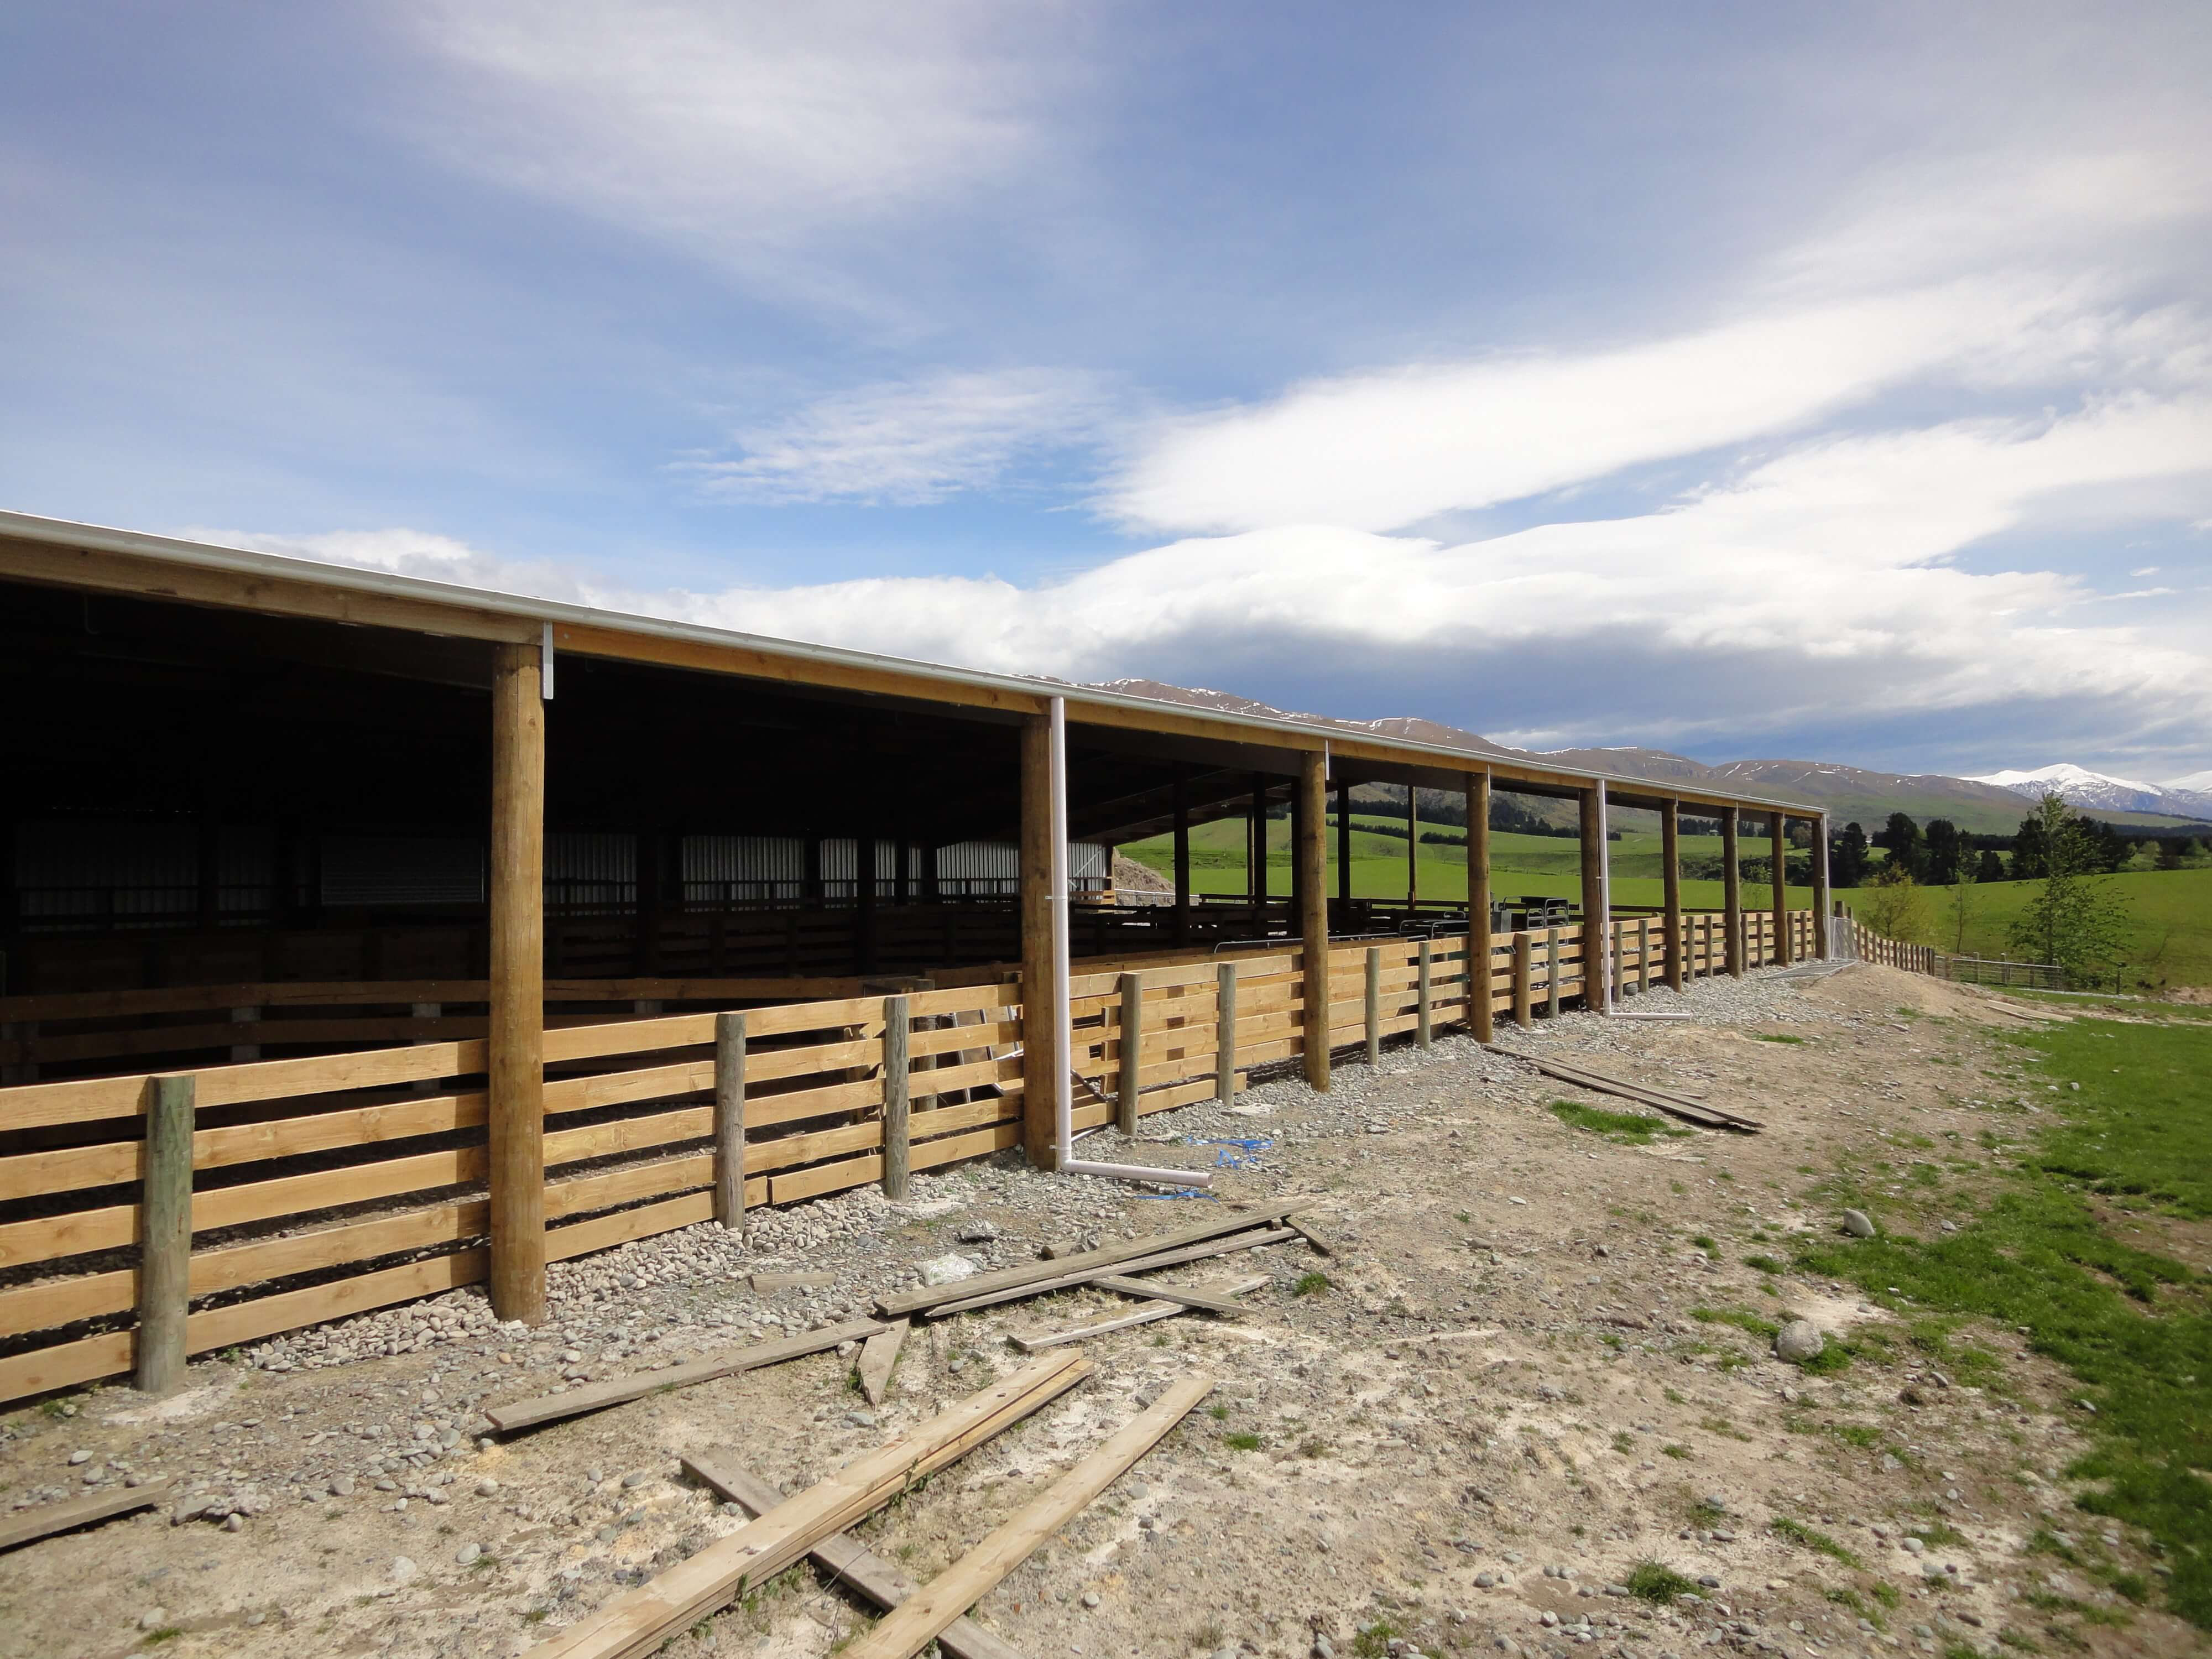 Animal health and safety is important with an Alpine animal shelter design